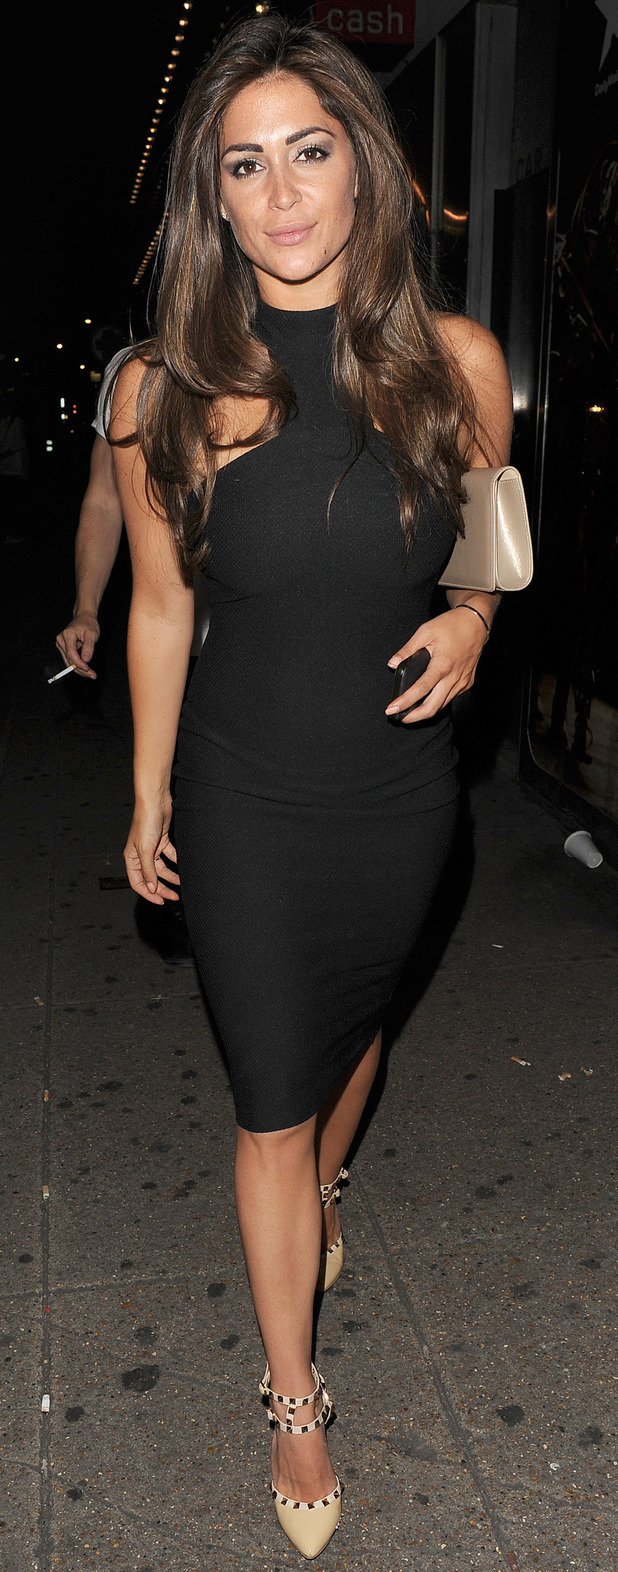 Casey Batchelor at the In The Style summer party in London 17th July 2015